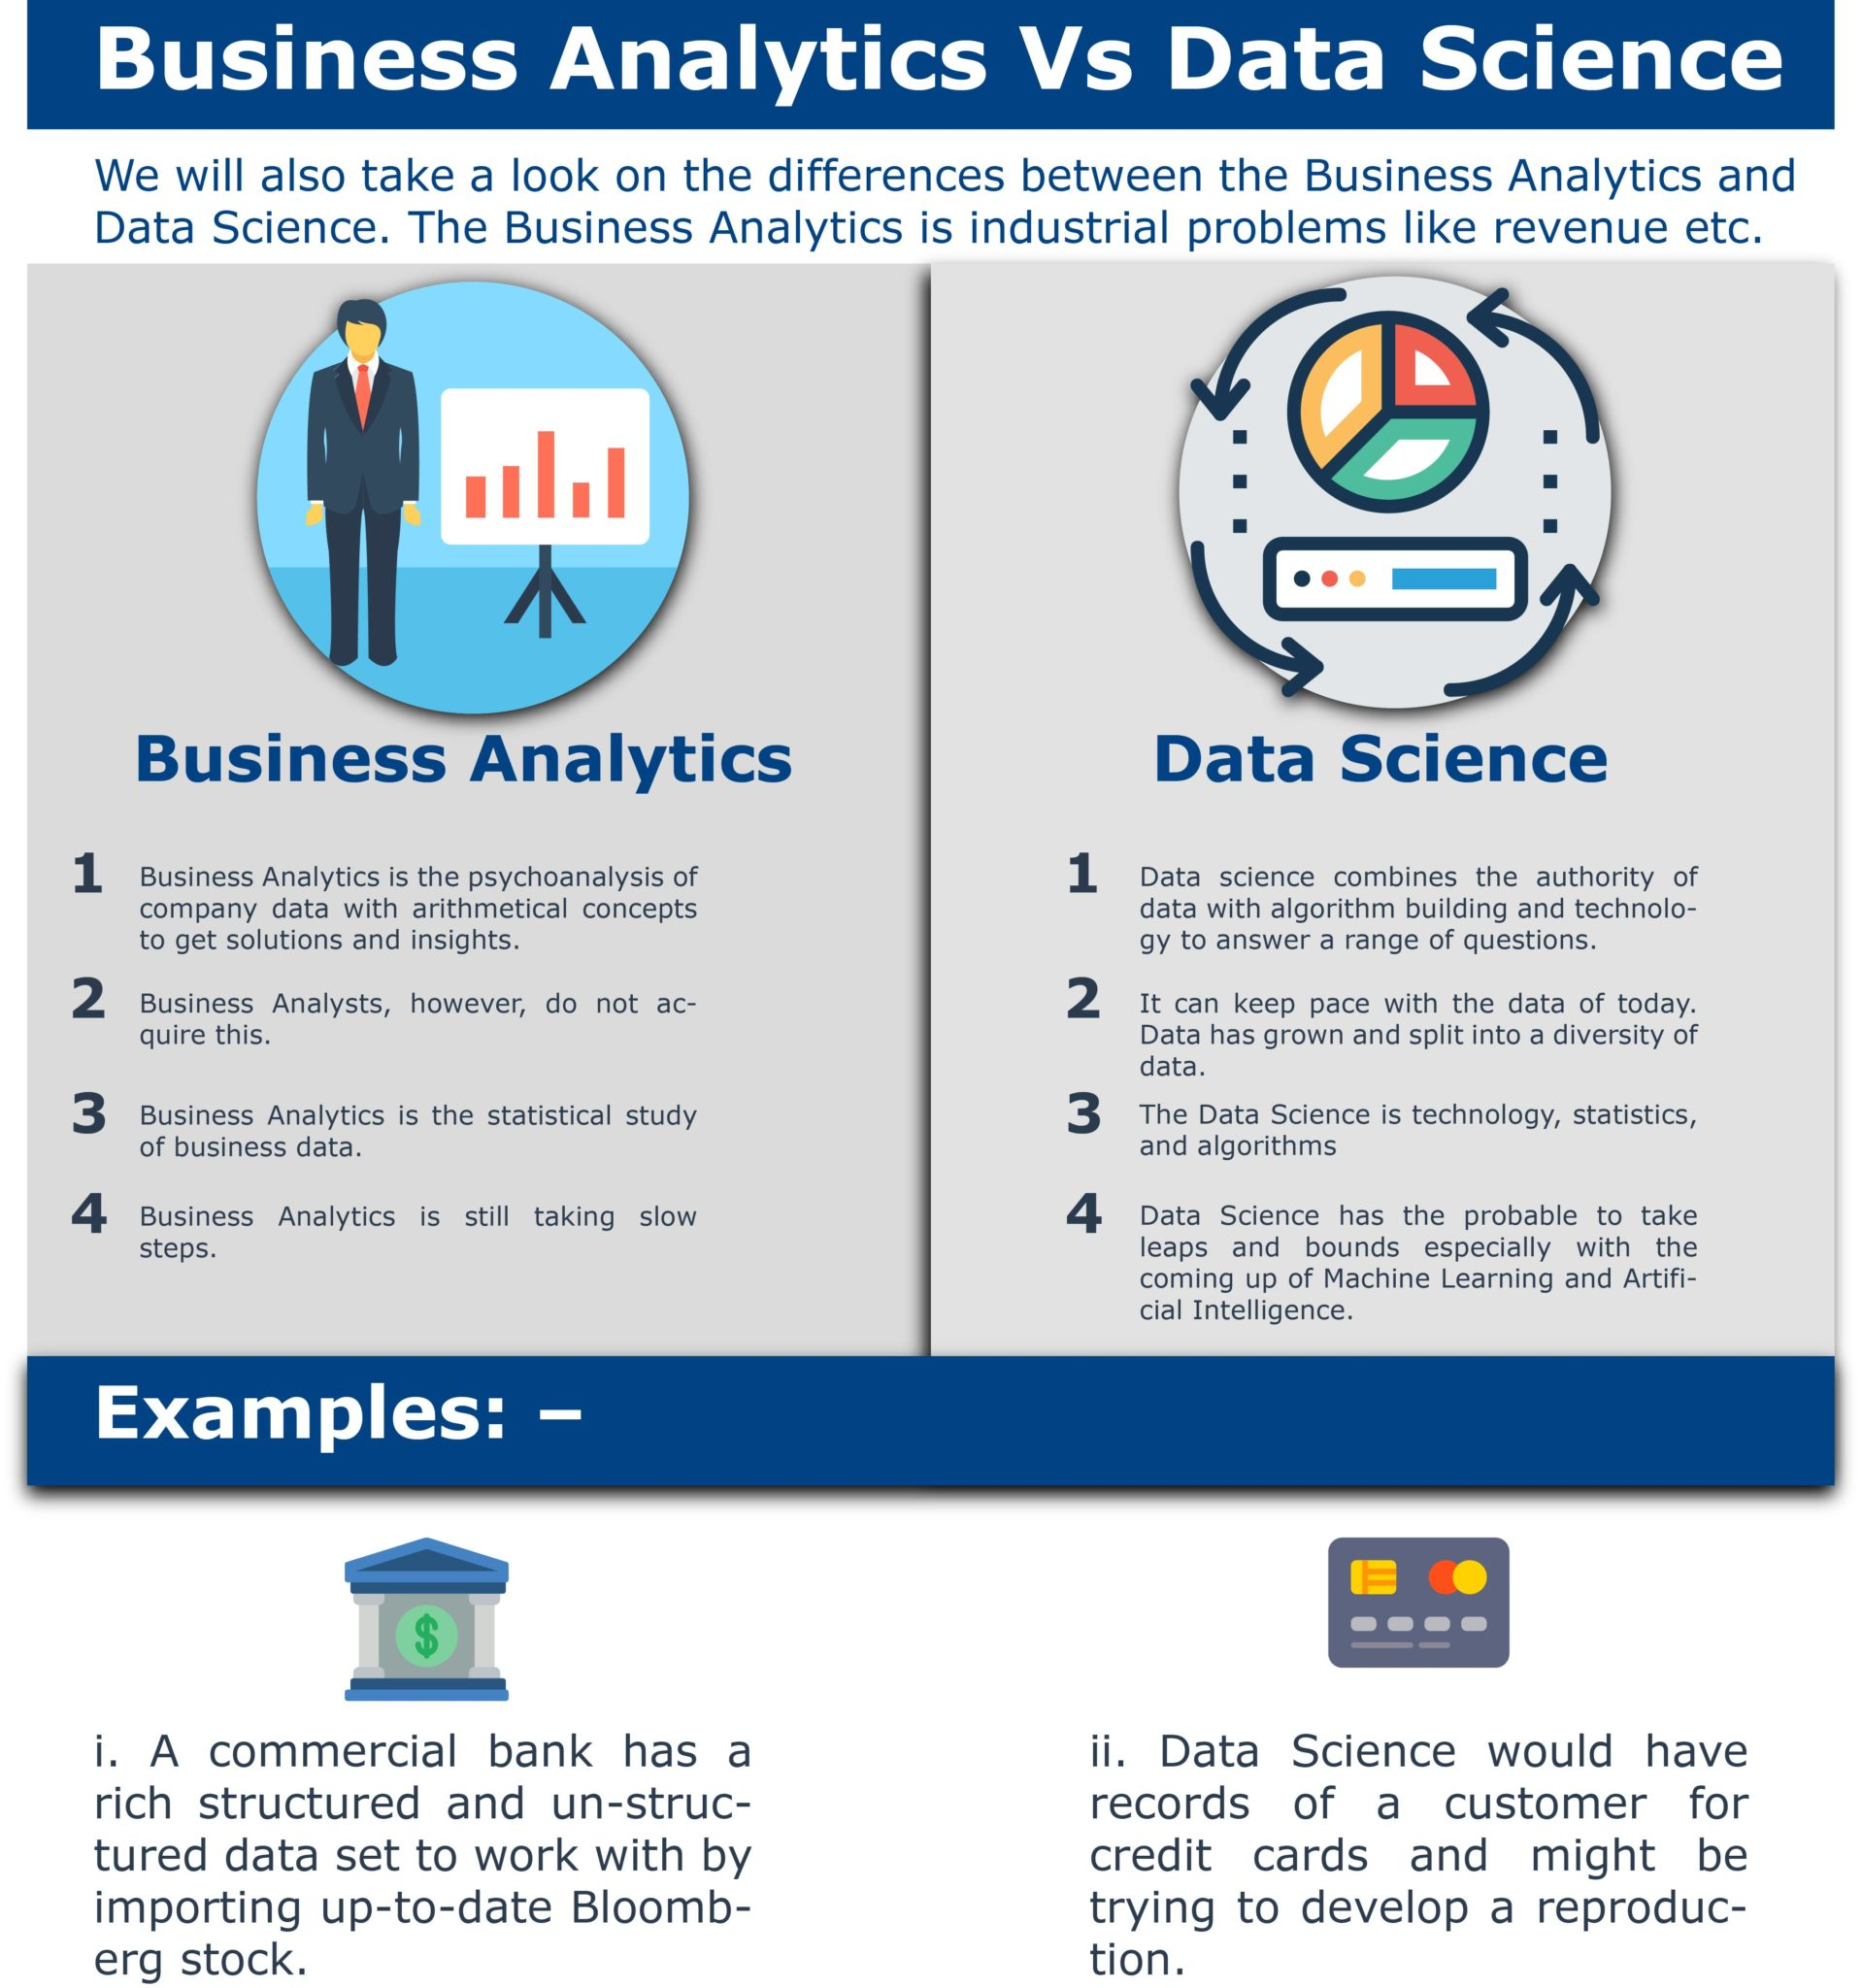 data-science-vs-business-analytics-comparison-infograhic-plaza